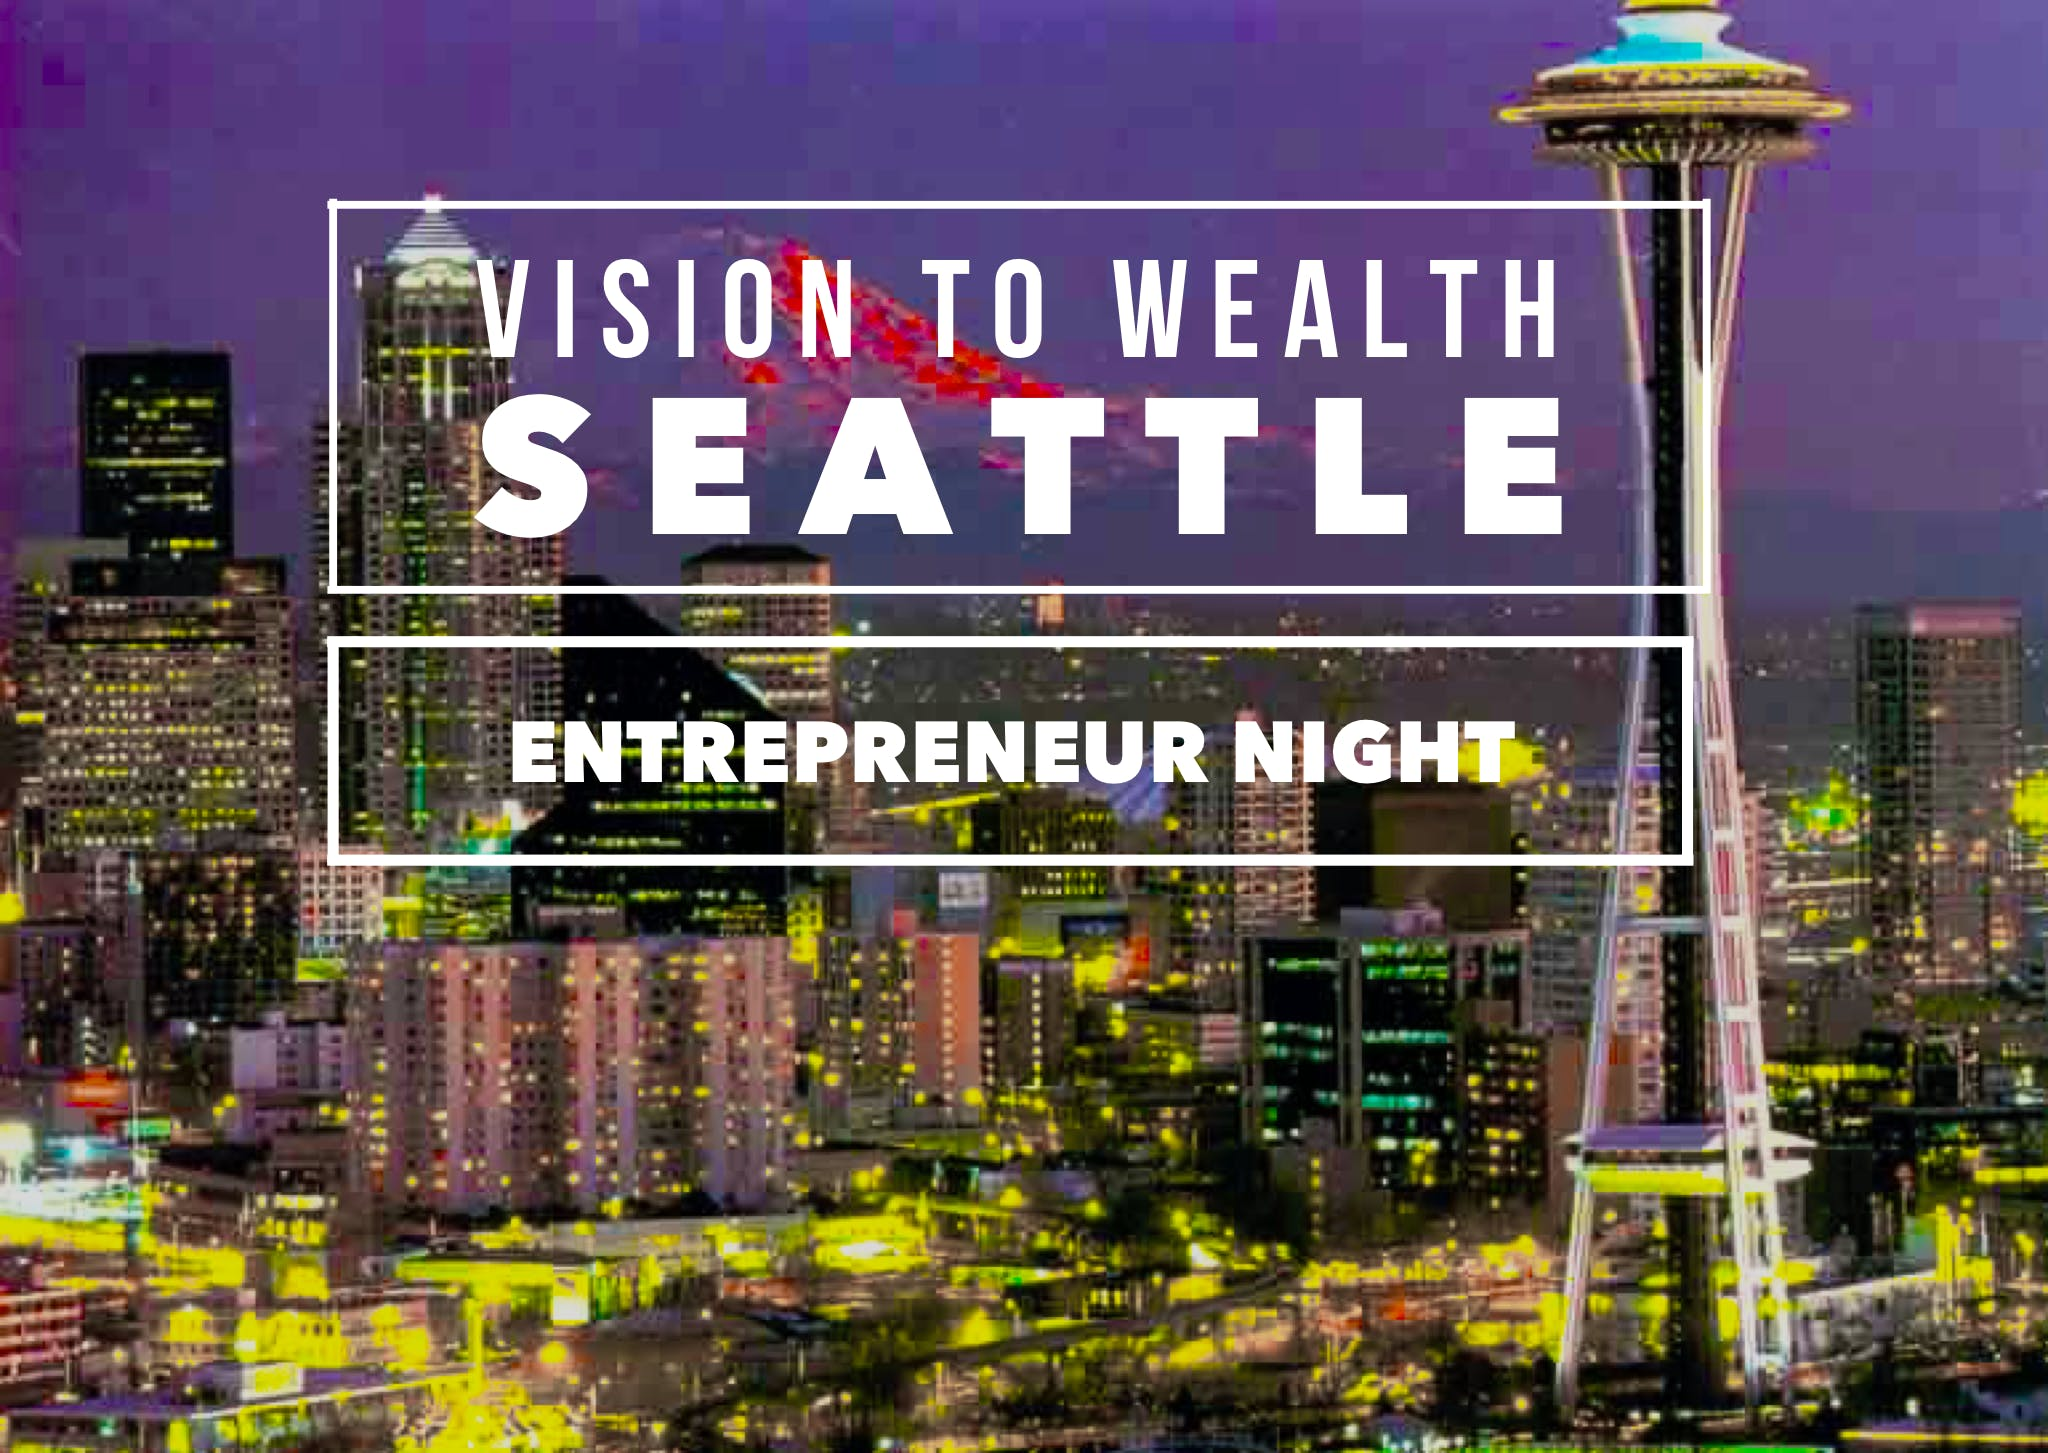 SEATTLE VISION TO WEALTH ENTREPRENEUR NIGHT